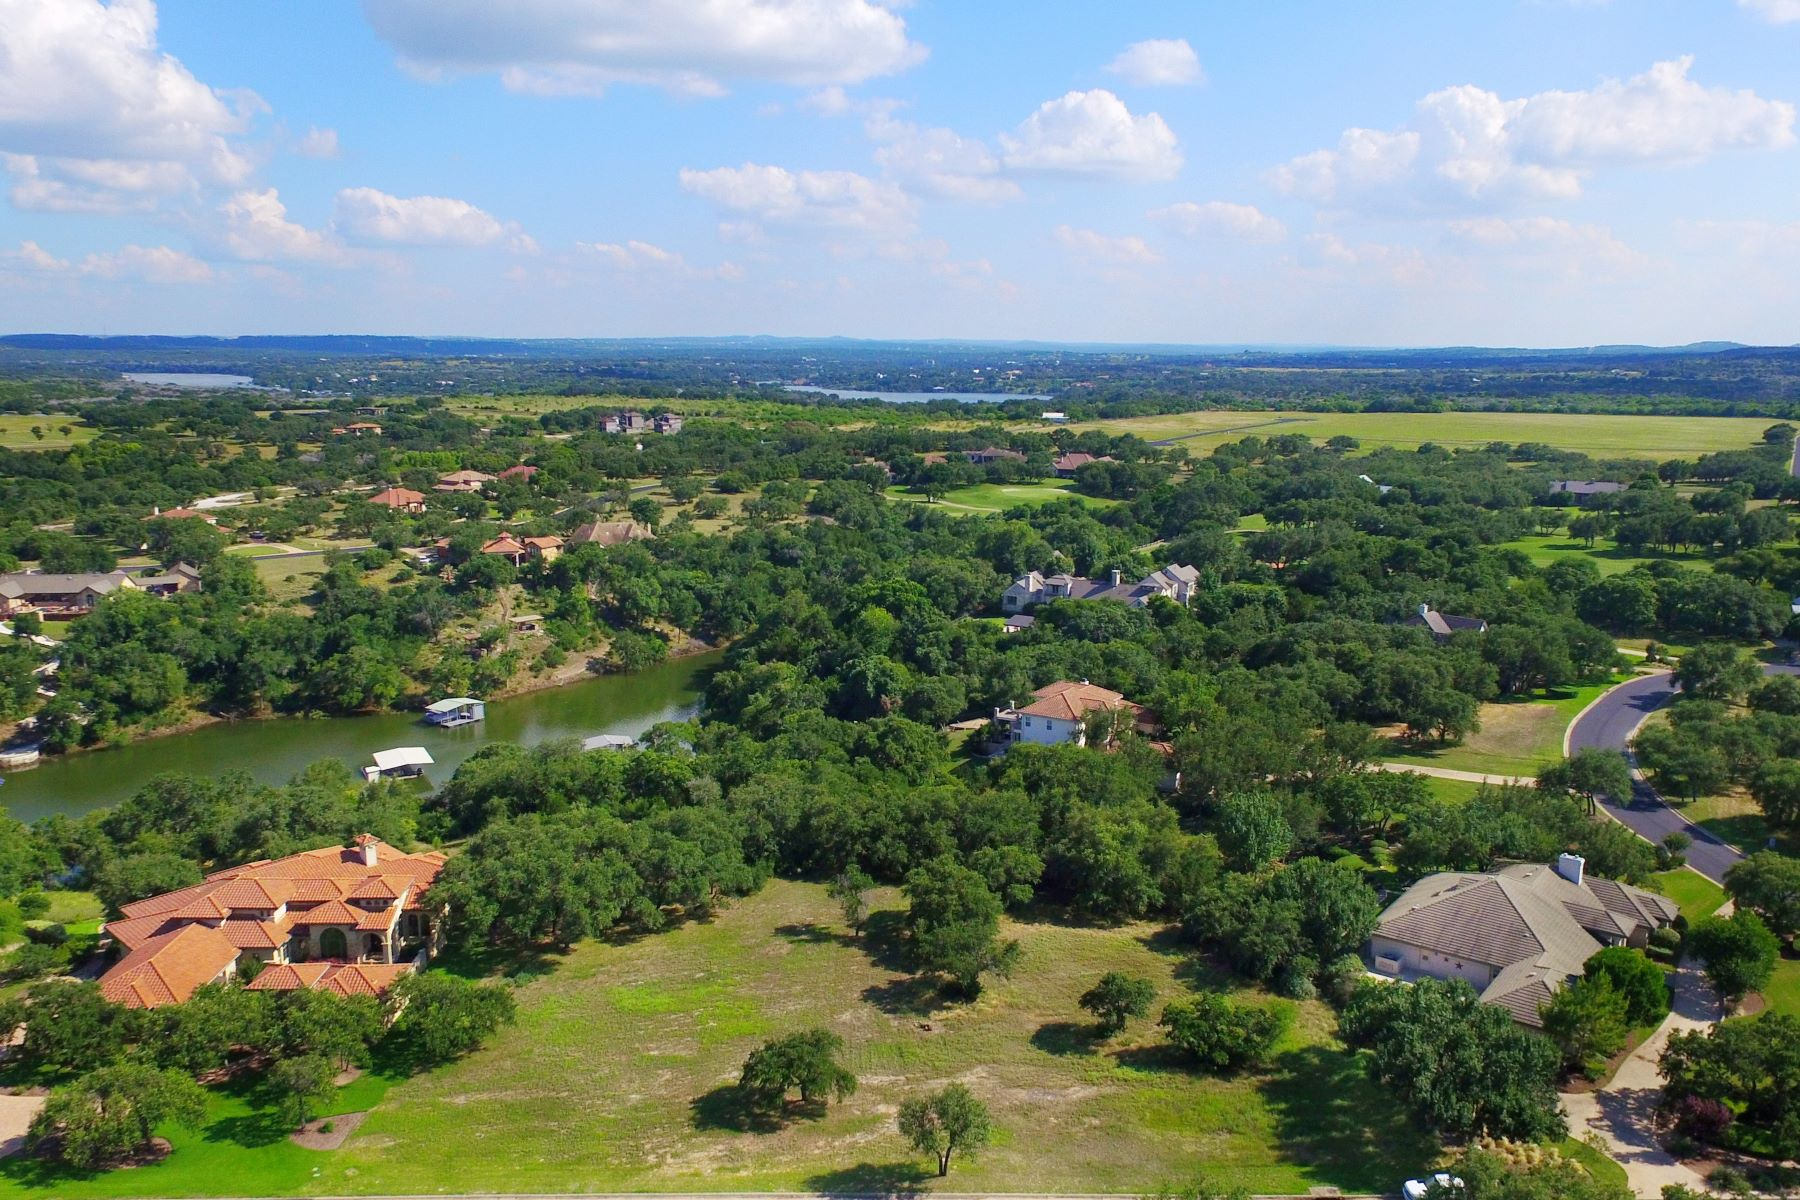 Land for Sale at The Perfect Land for the Perfect Home 26205 Countryside Dr Spicewood, Texas 78669 United States